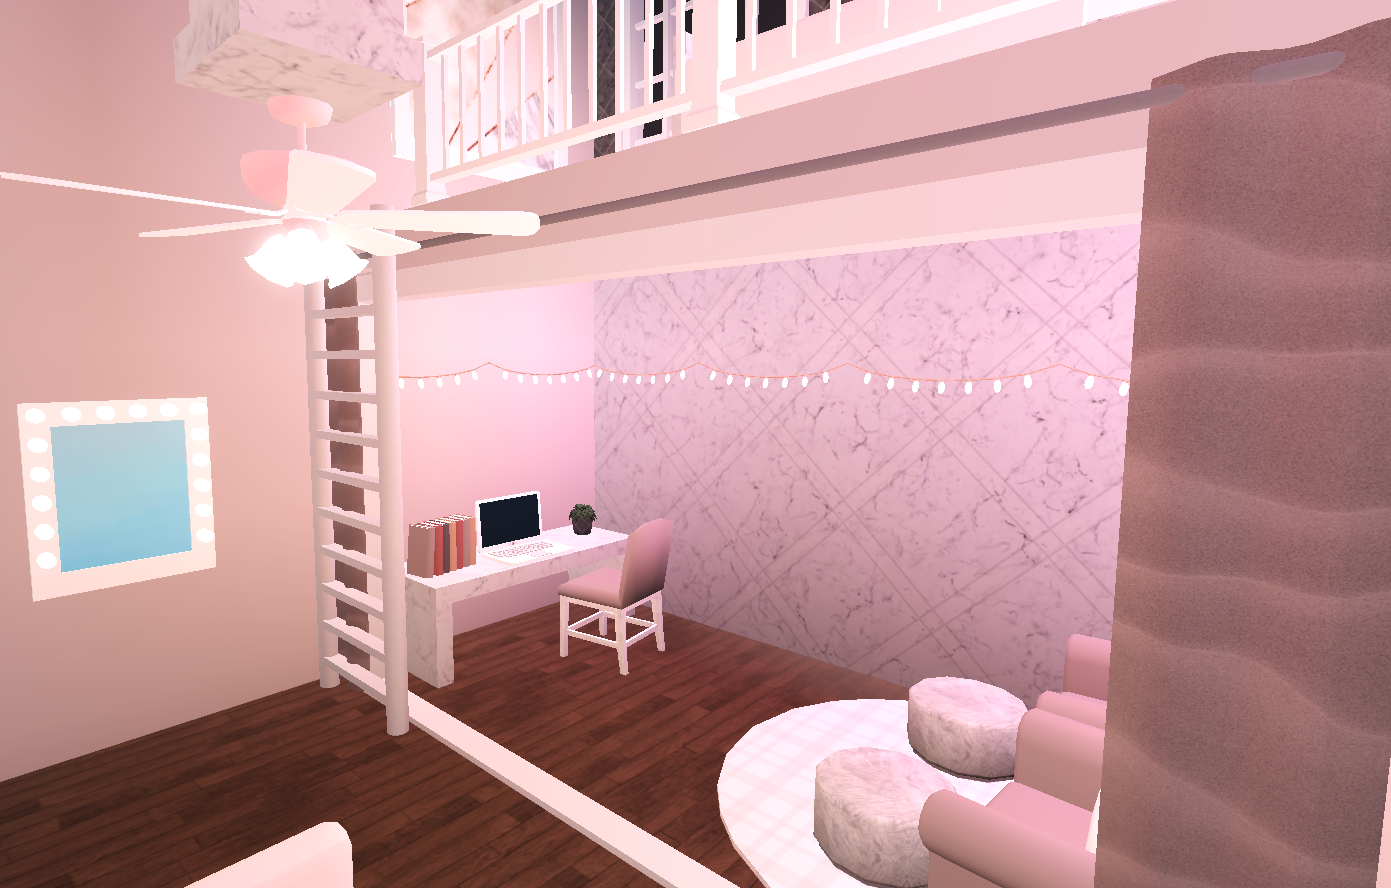 Pink Aesthetic Bloxburg Bedroom House Decorating Ideas Apartments Unique House Design Diy House Plans